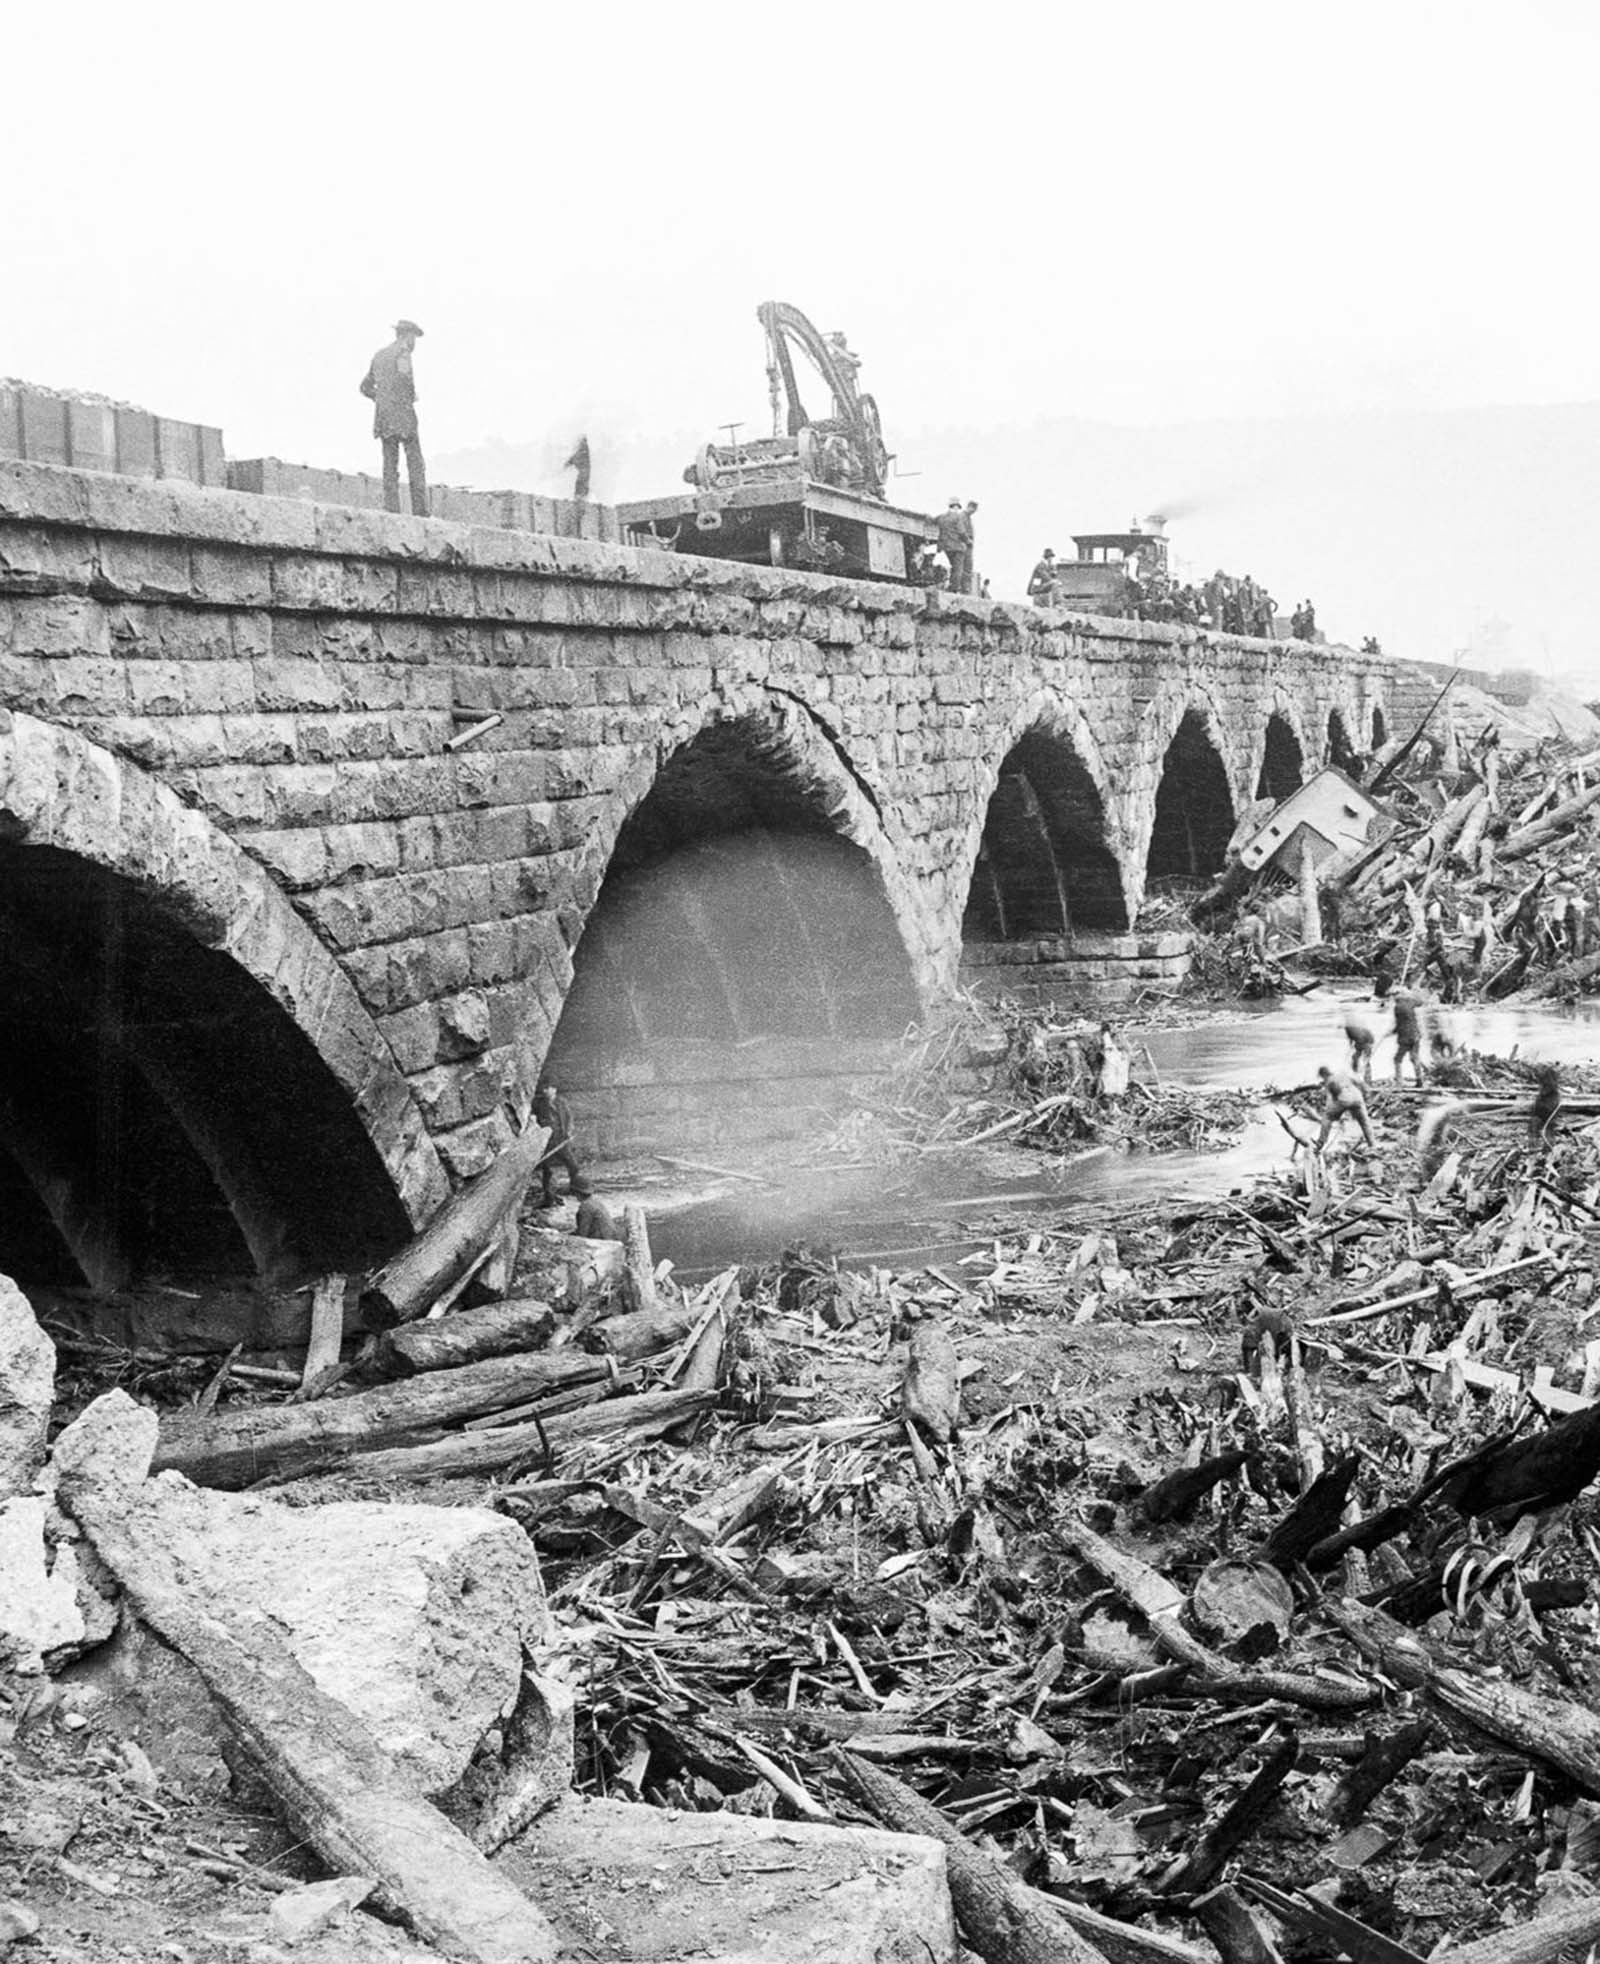 Volunteers search for bodies in the debris piled up against the stone bridge.